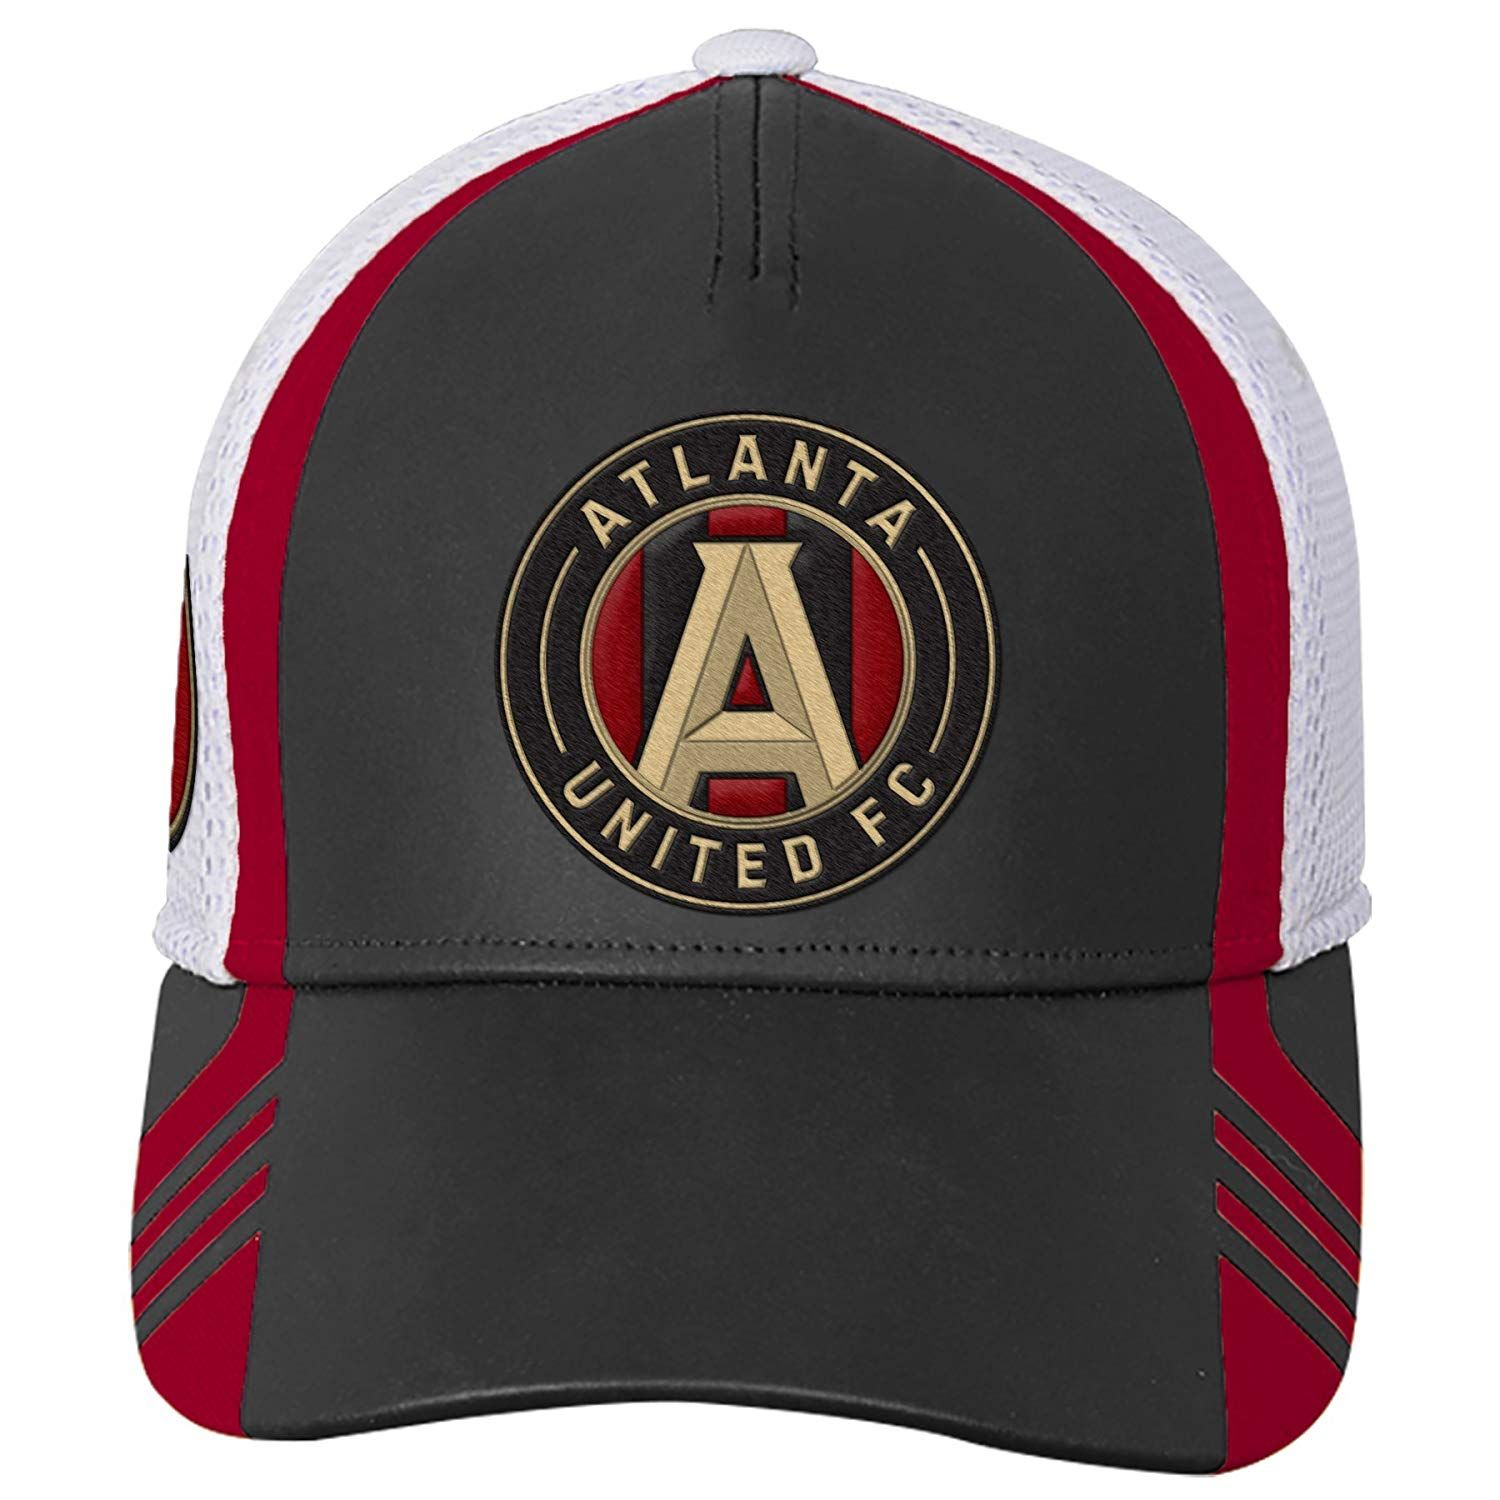 low priced b47b6 af693 Outerstuff MLS Atlanta United R S8FMM Youth Boys Structured Flex Hat,   20.19 - You Save   1.68 (8%)